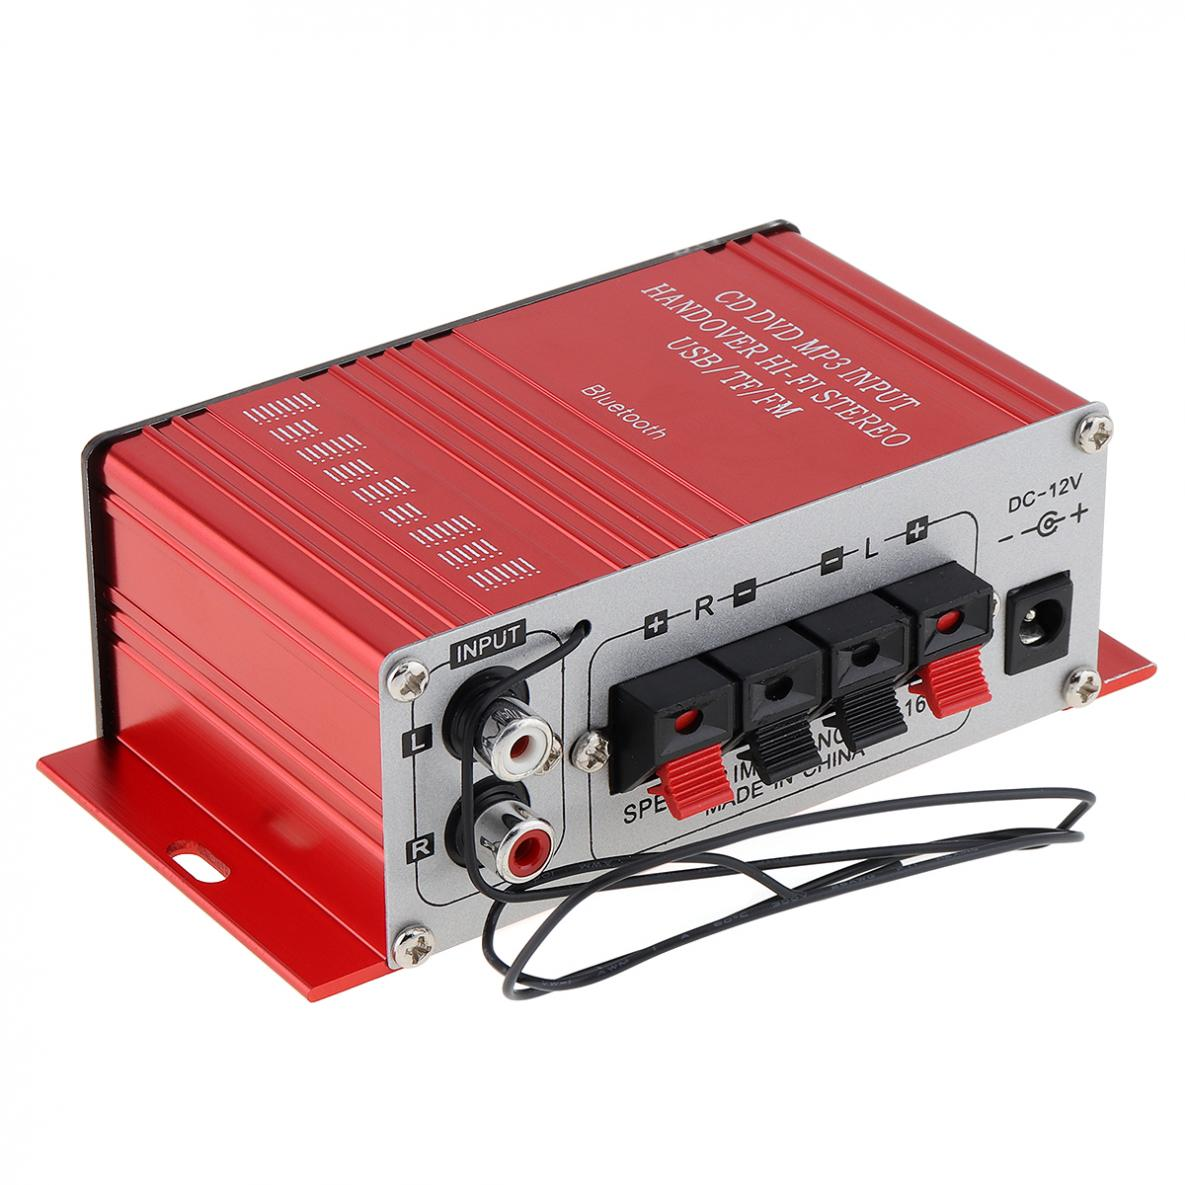 G8 2ch Bluetooth Car Audio Power Amplifier Sd Usb Fm Mp3 Player With 20w Stereo Circuit Based Tda2005